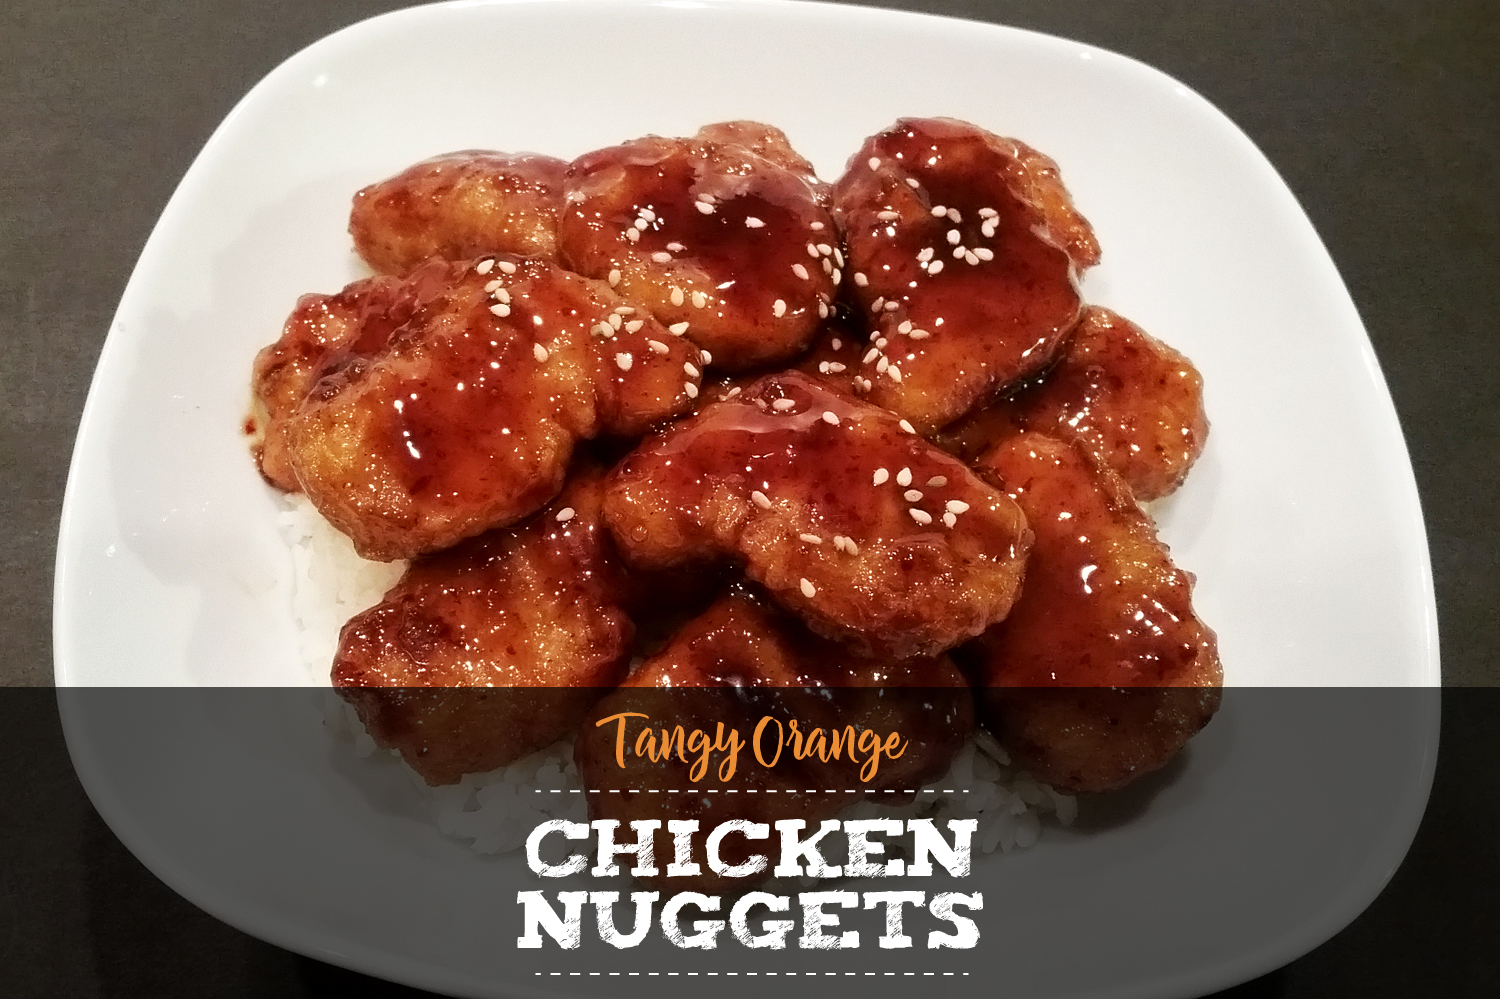 Tangy Orange Chicken Nuggets